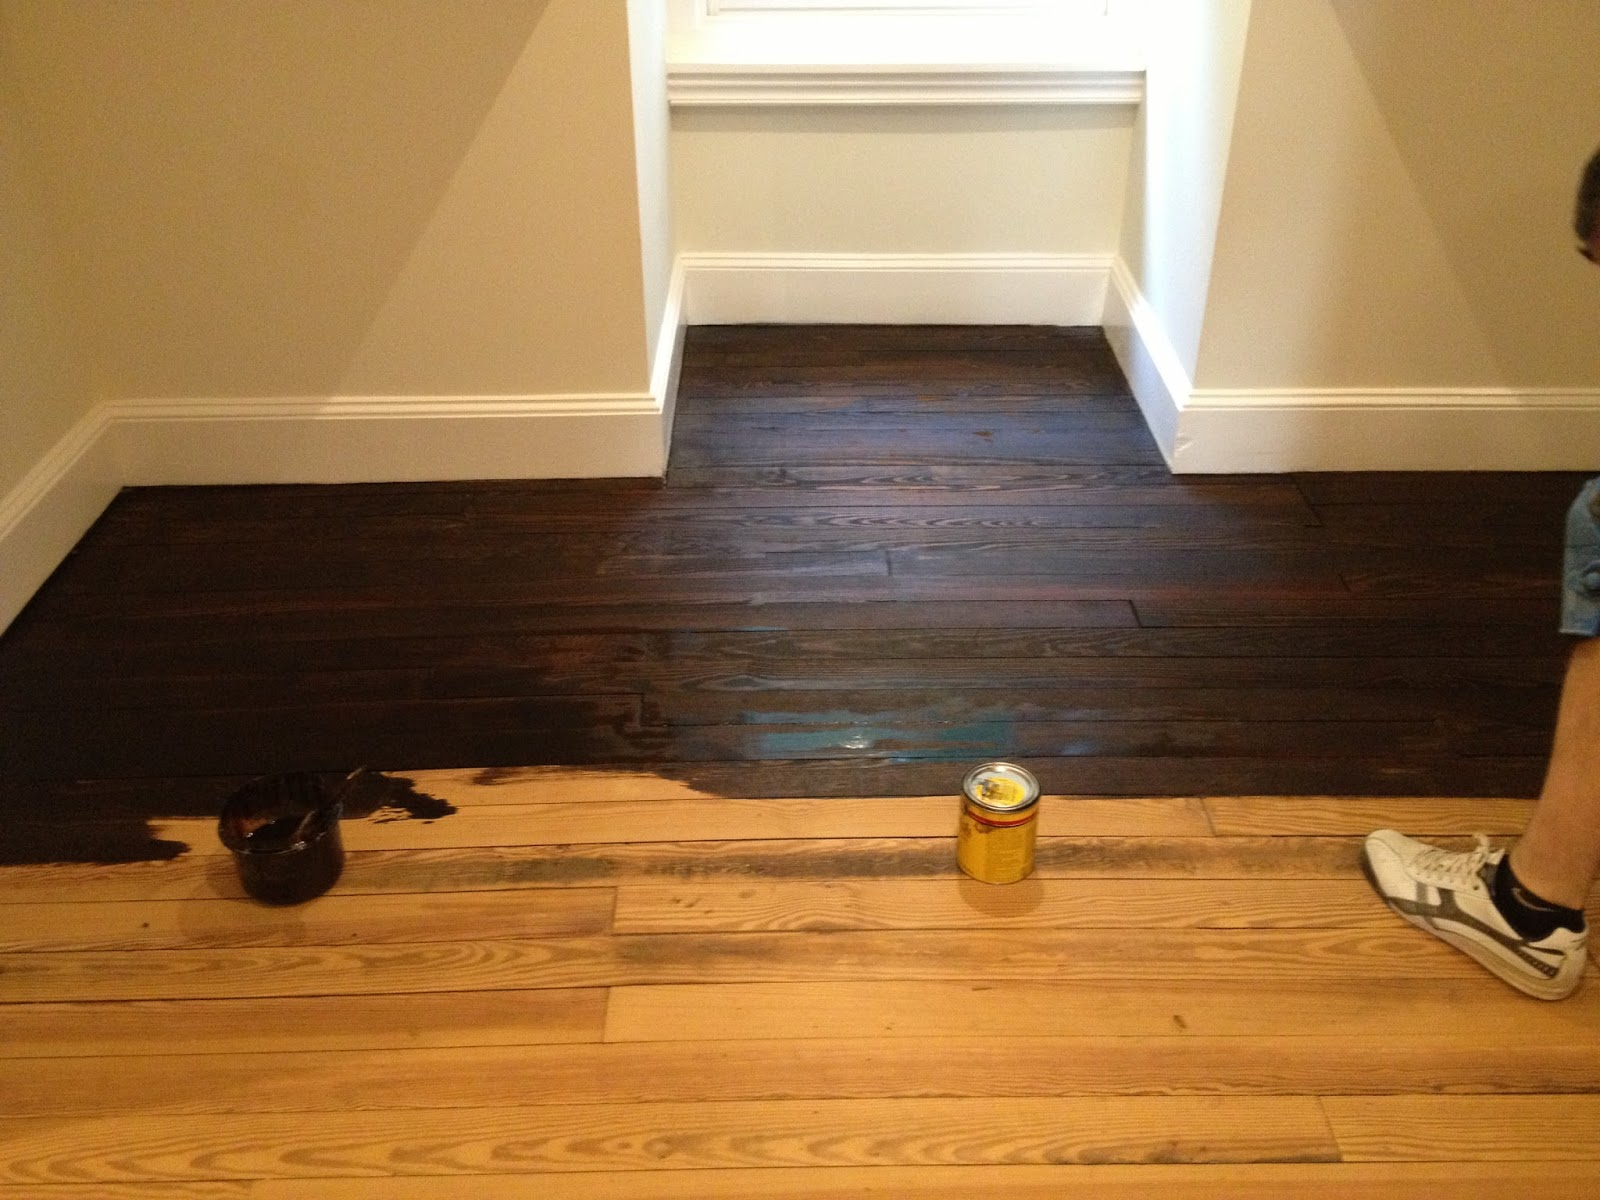 Diy Hardwood Floor diy tips for how to fix squeaky floors High Street Market 3rd Floor Refinished Hardwood Floor Diy